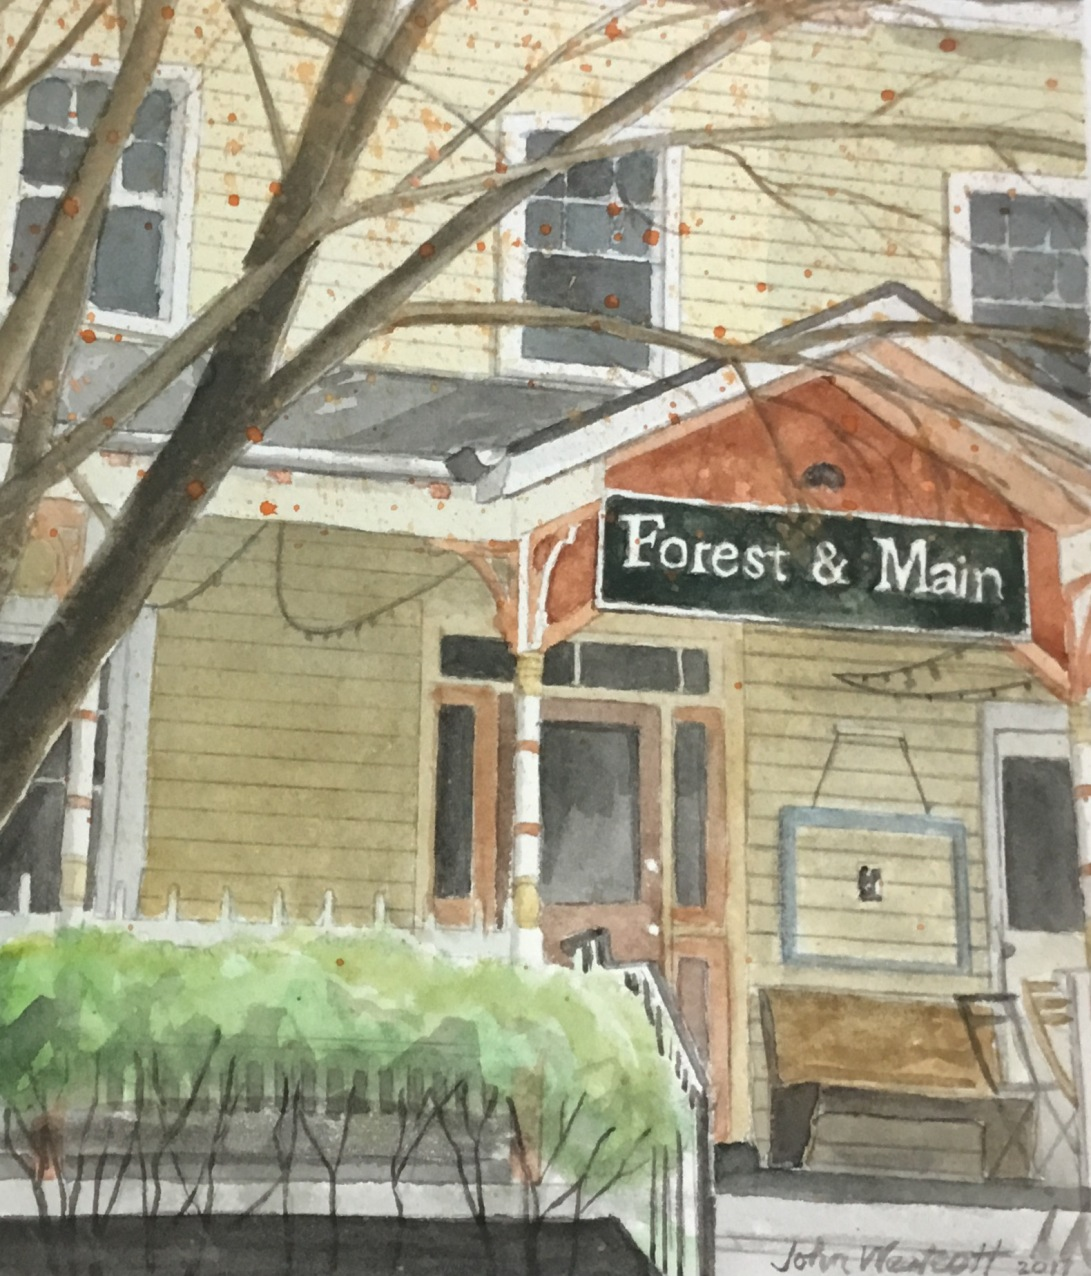 Forest & Main Brewery and Pub